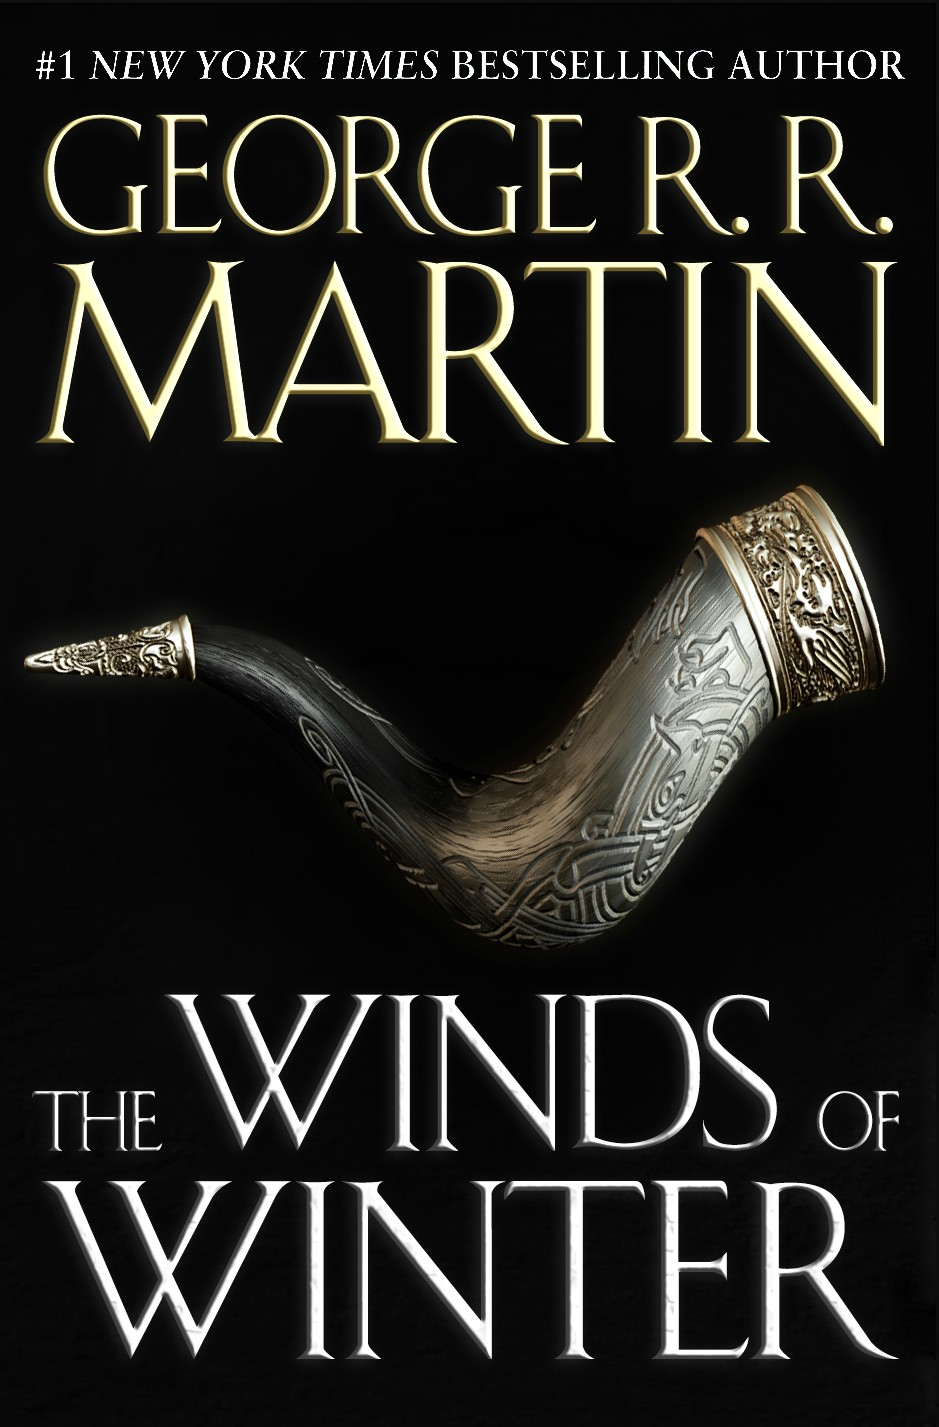 Release Date Winds Of Winter >> 'Winds of Winter' release date: George R.R. Martin focusing on new book, not writing 'Game of ...